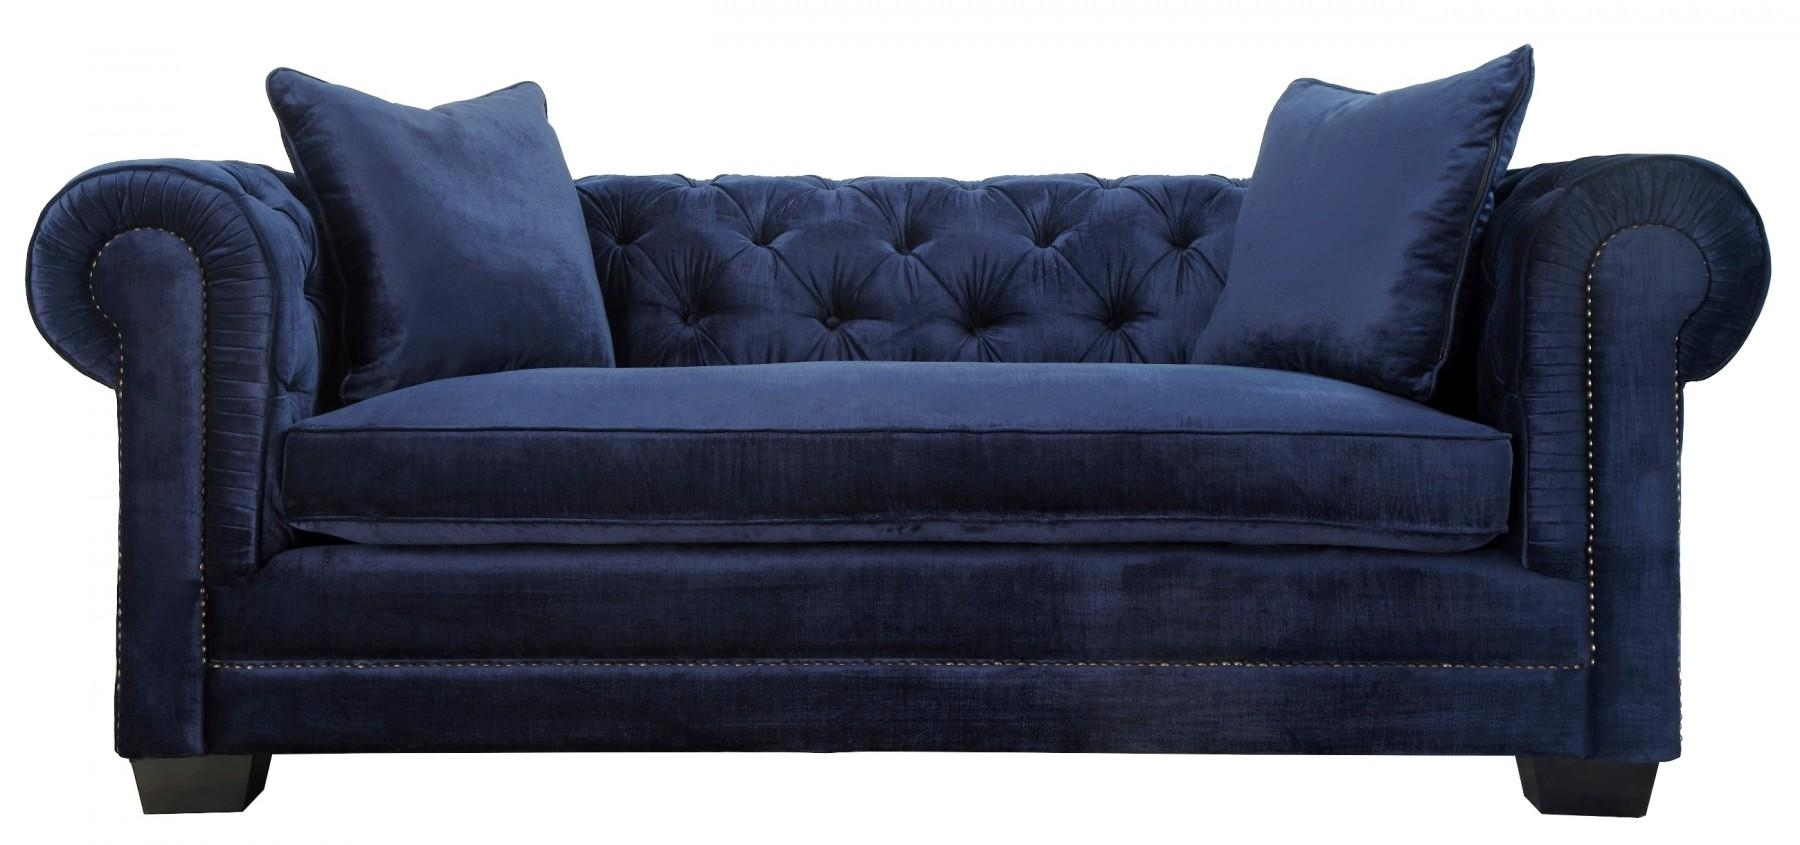 Chair Norwalk Furniture Norwalkcustom Twitter Deacawtu0A Norwalk Within Norwalk Sofa And Chairs (Image 8 of 20)